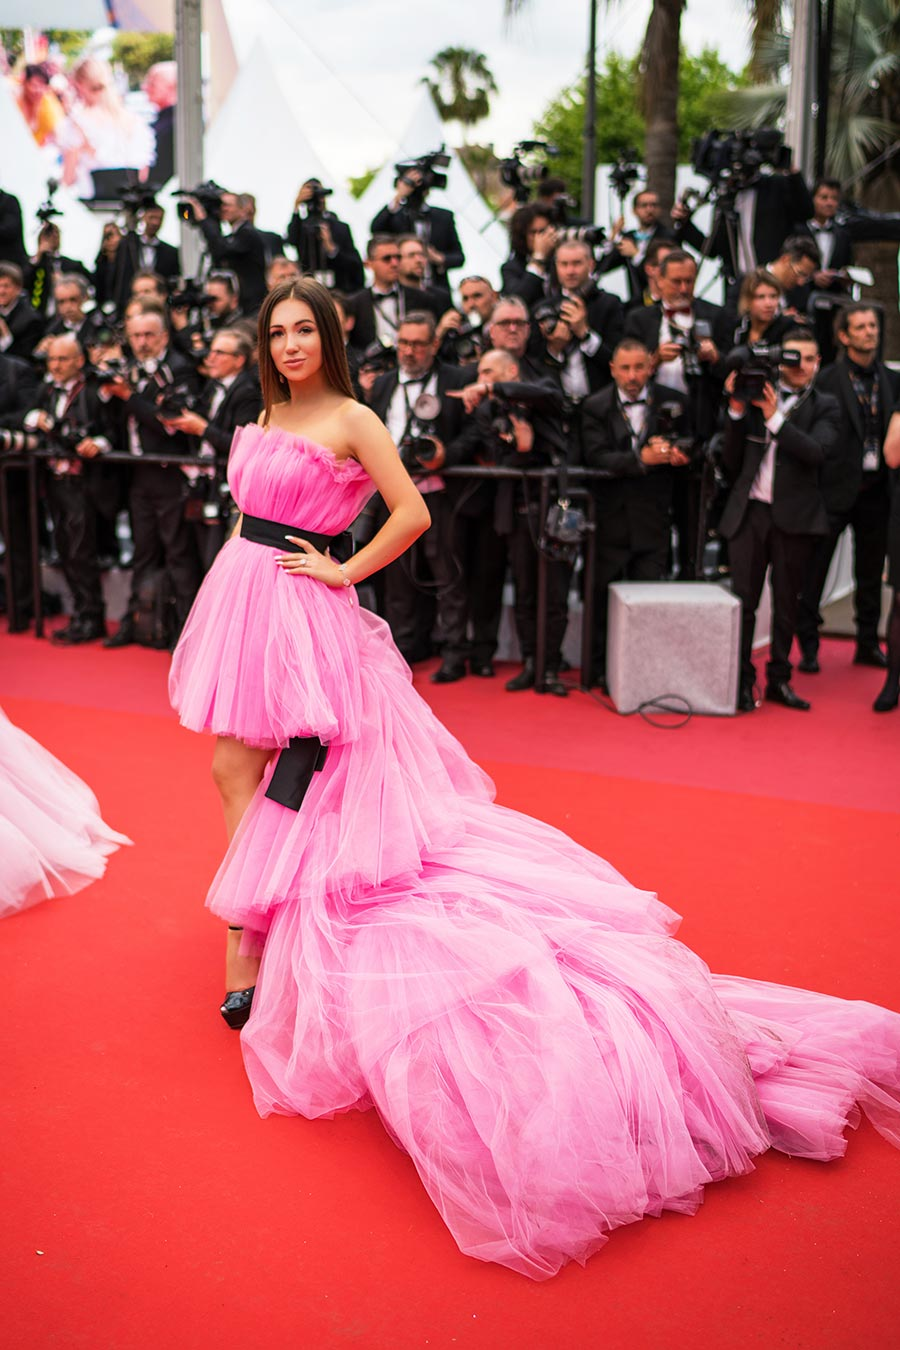 Elvira Gavrilova in 72nd Cannes Film Festival 2019